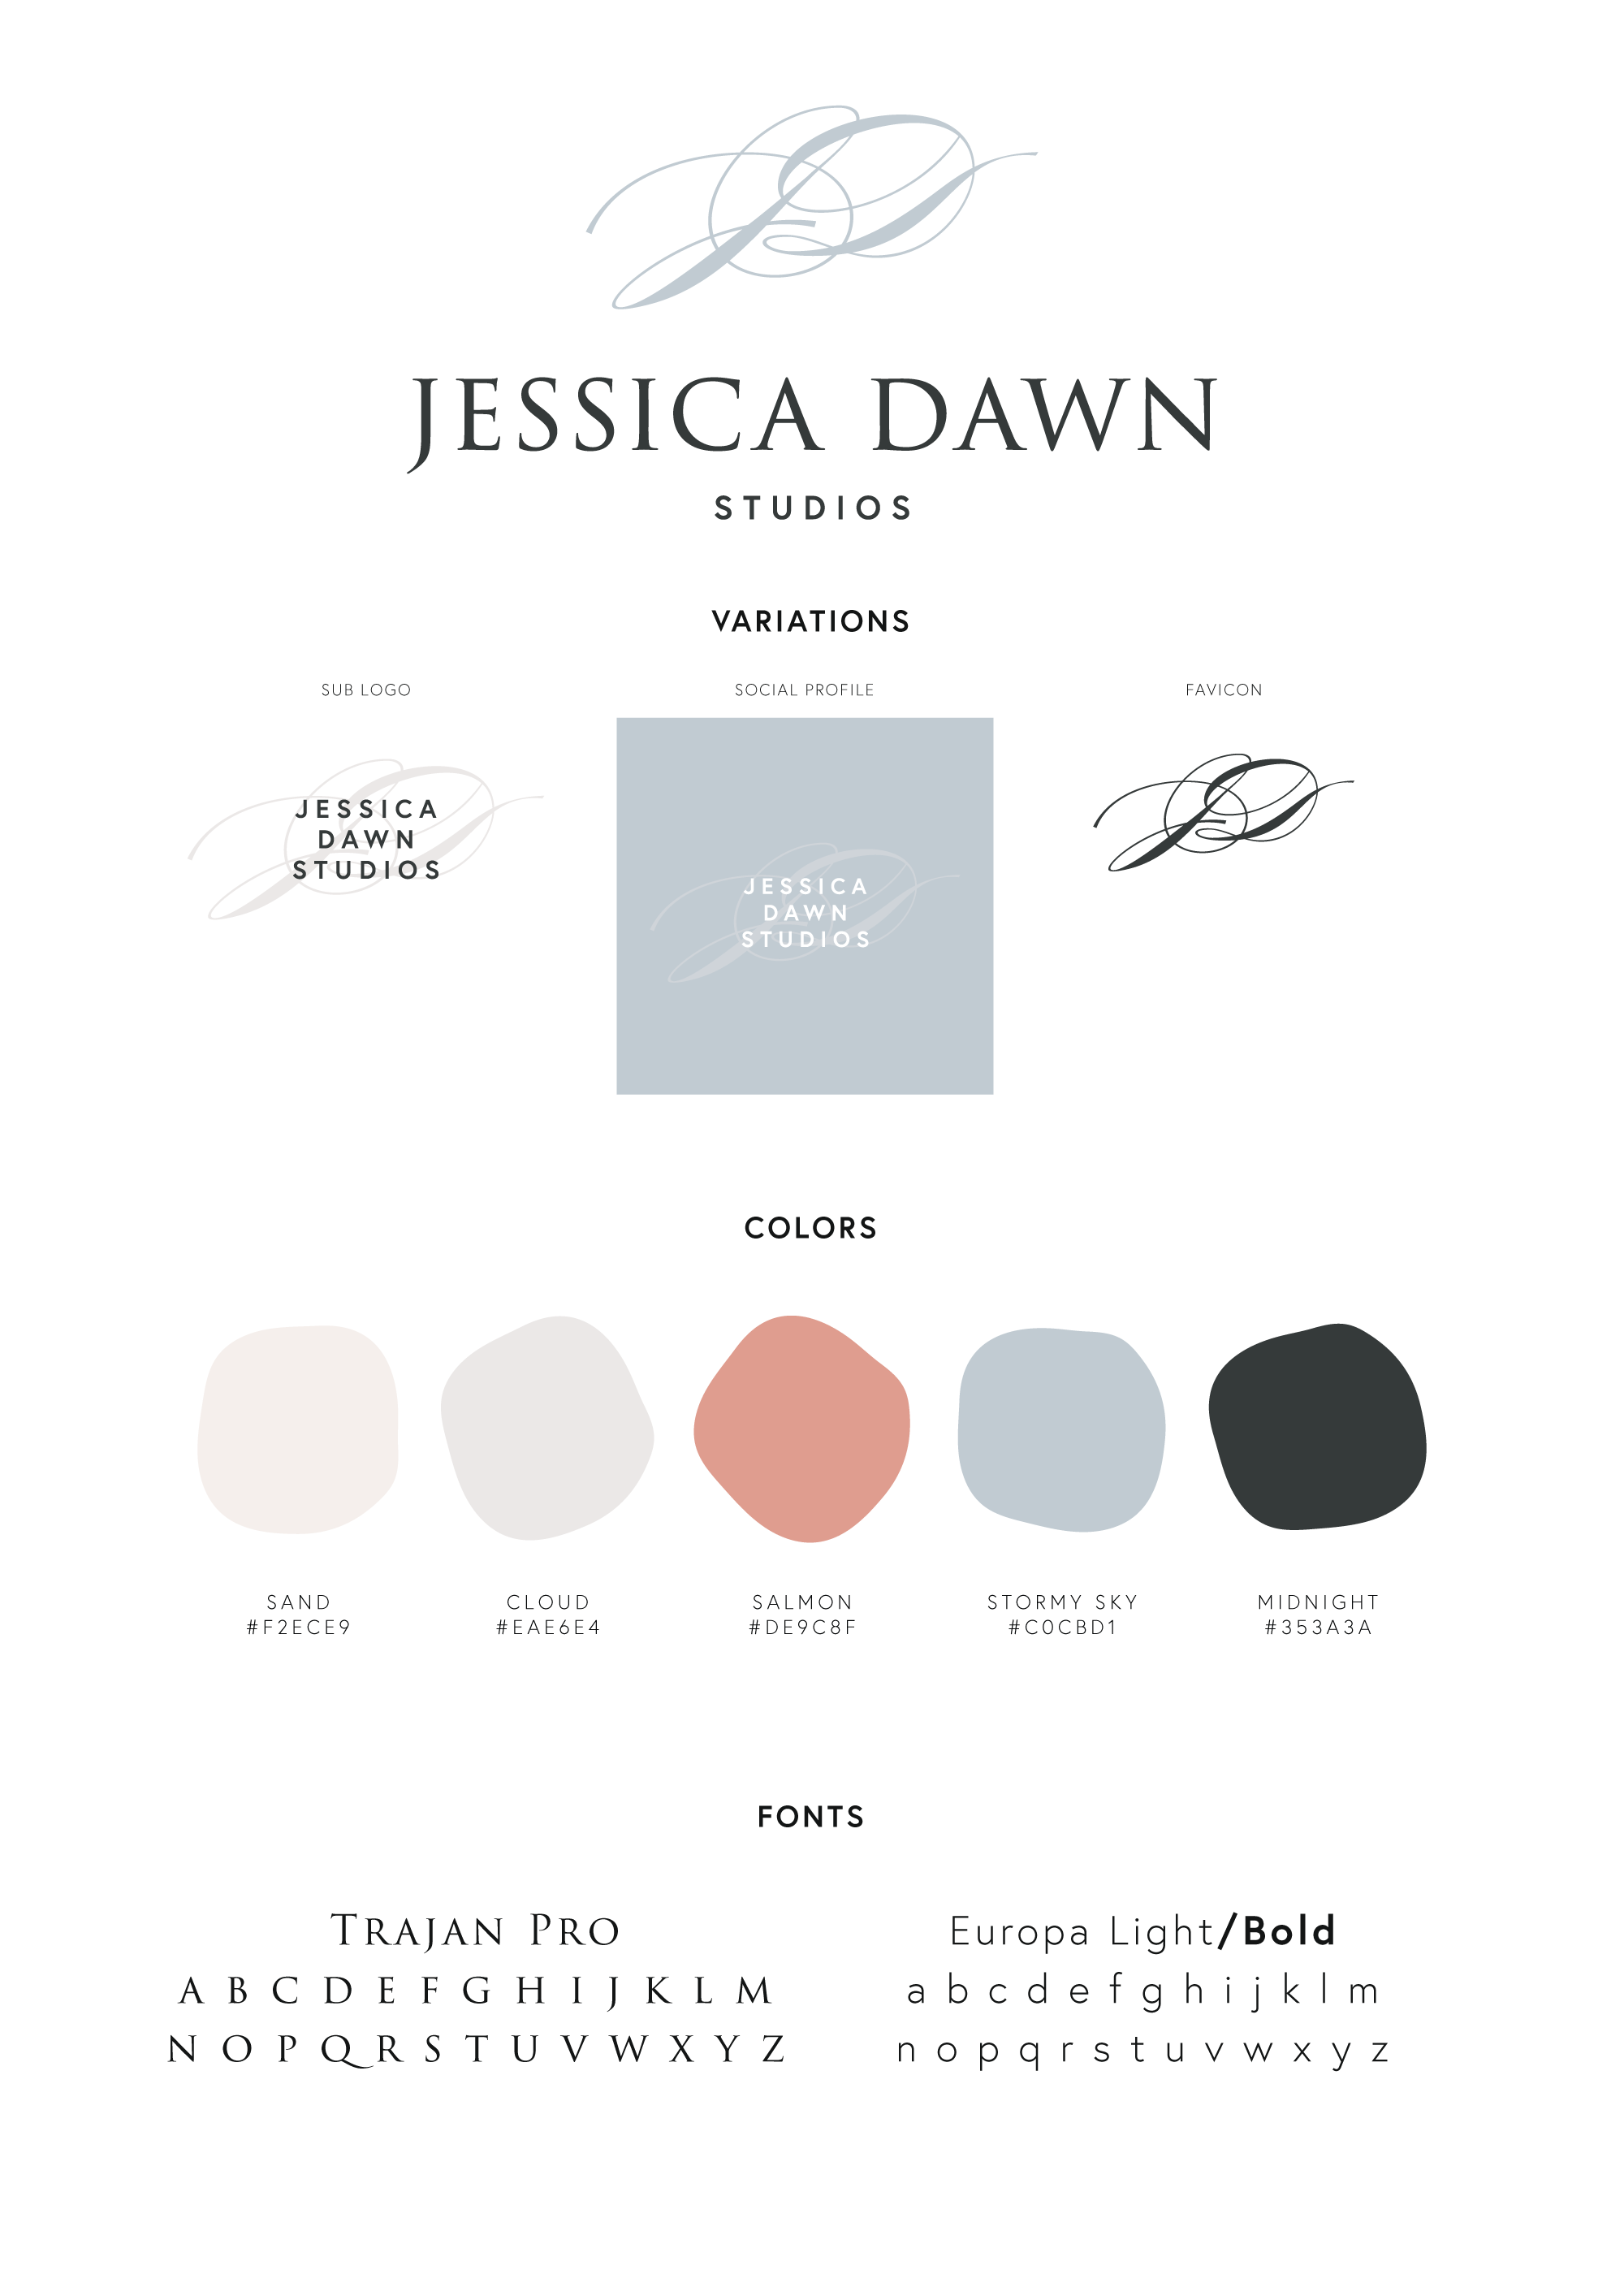 Brand guide designed for Jessica Dawn Studios by Rachel Cottrell with fonts, colors, and logo variations for easy reference | #graphicdesigner #branddesign #weddingphotographer #romanticweddingphotos #modernbrand #moodboard #photogbranding #branding #familyphotographer #creativebusiness #mycreativebiz #womeninbusiness #bossbabe #girlboss